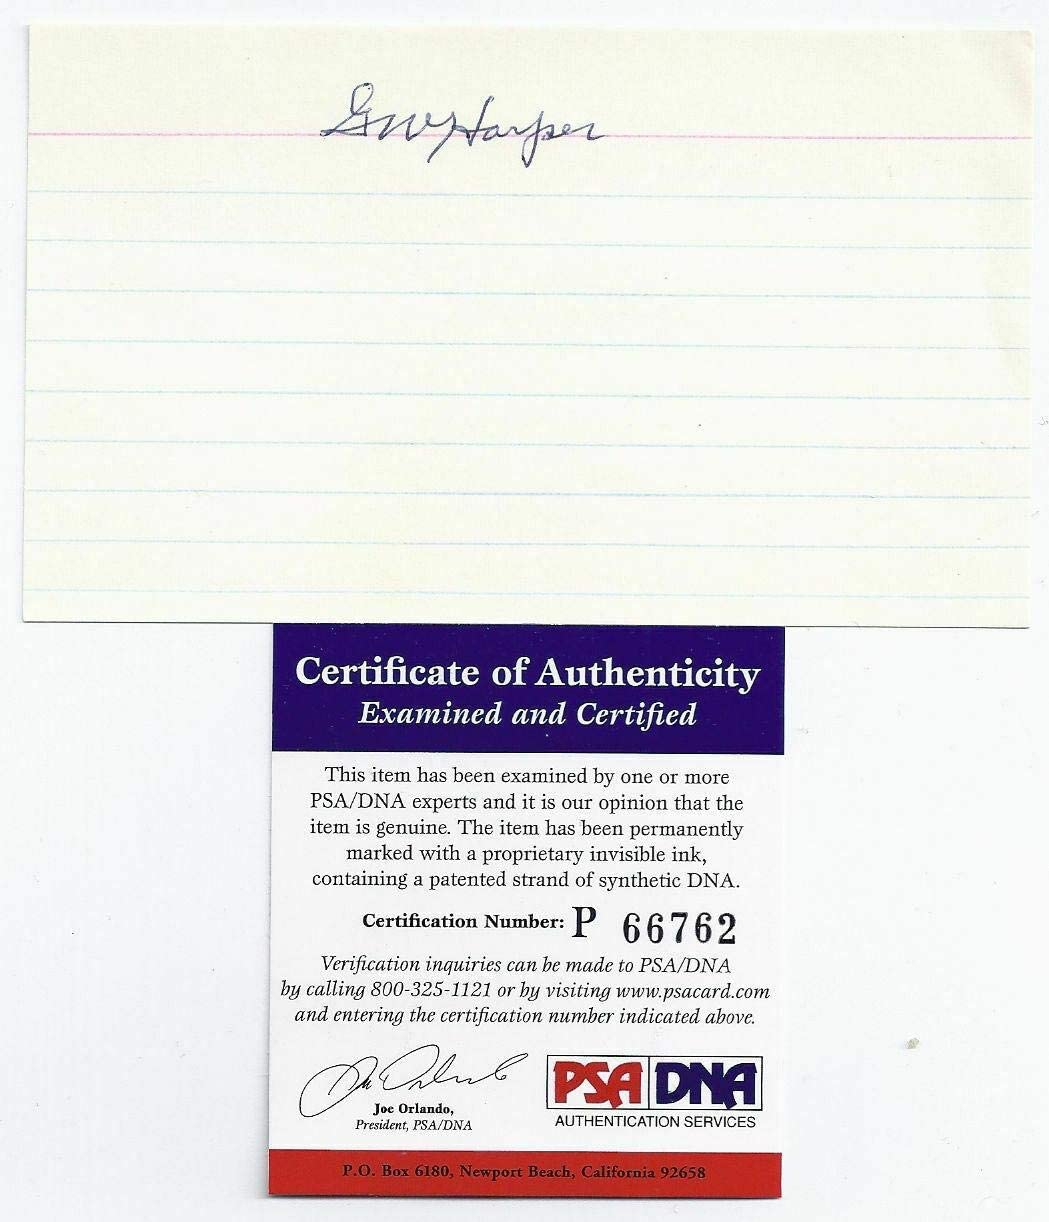 George Harper Signed Super beauty product restock quality top Index Card - Signatures MLB PSA Cut Limited time trial price DNA